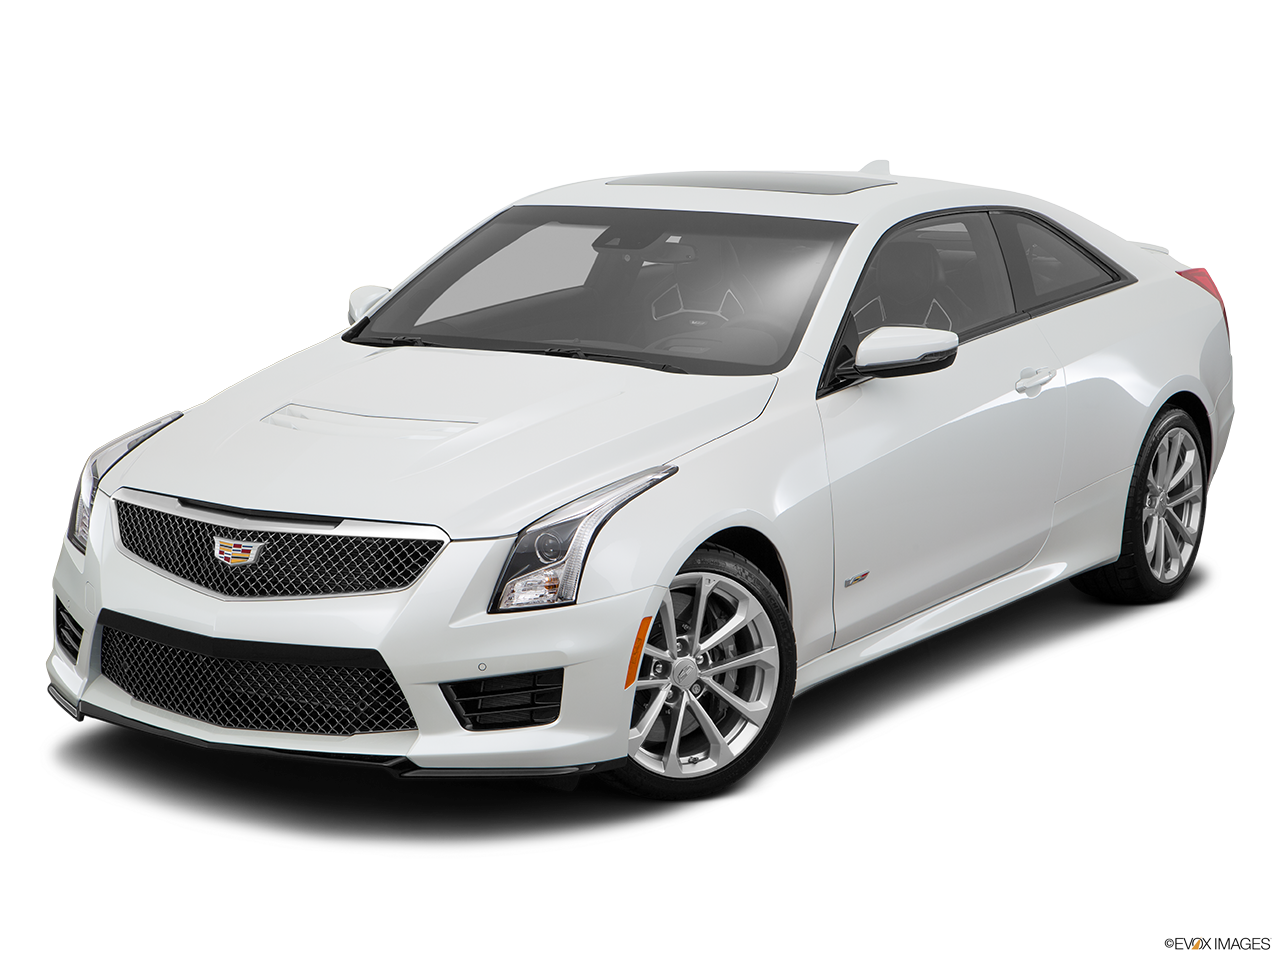 White Cadillac High Quality PNG 22856